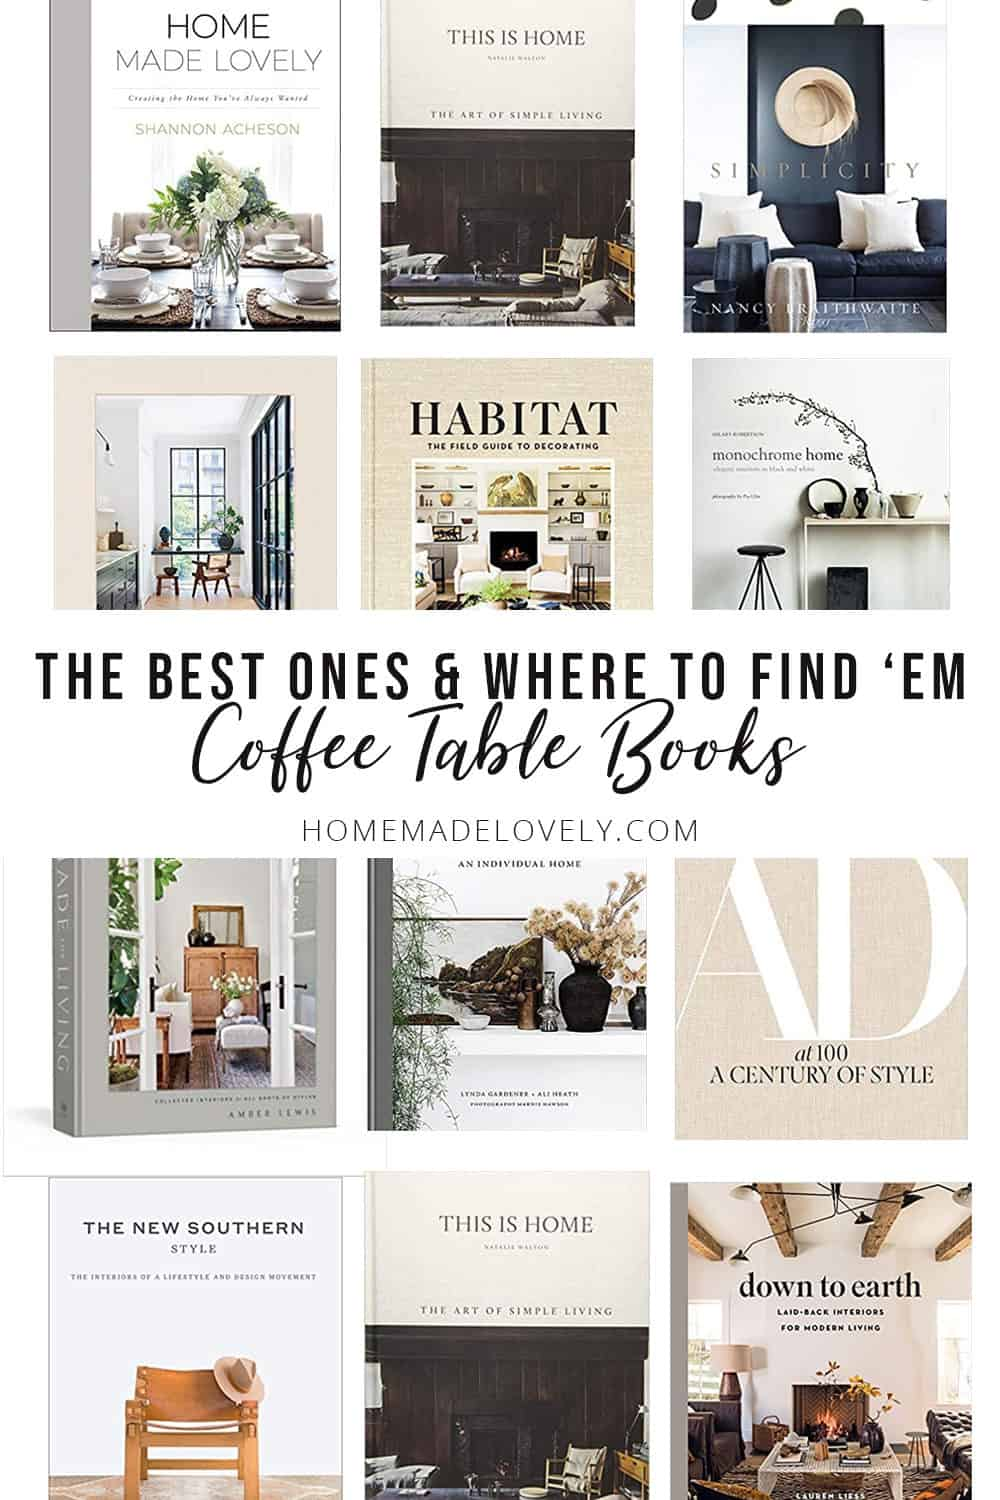 Coffee table books in a grid with text overlay